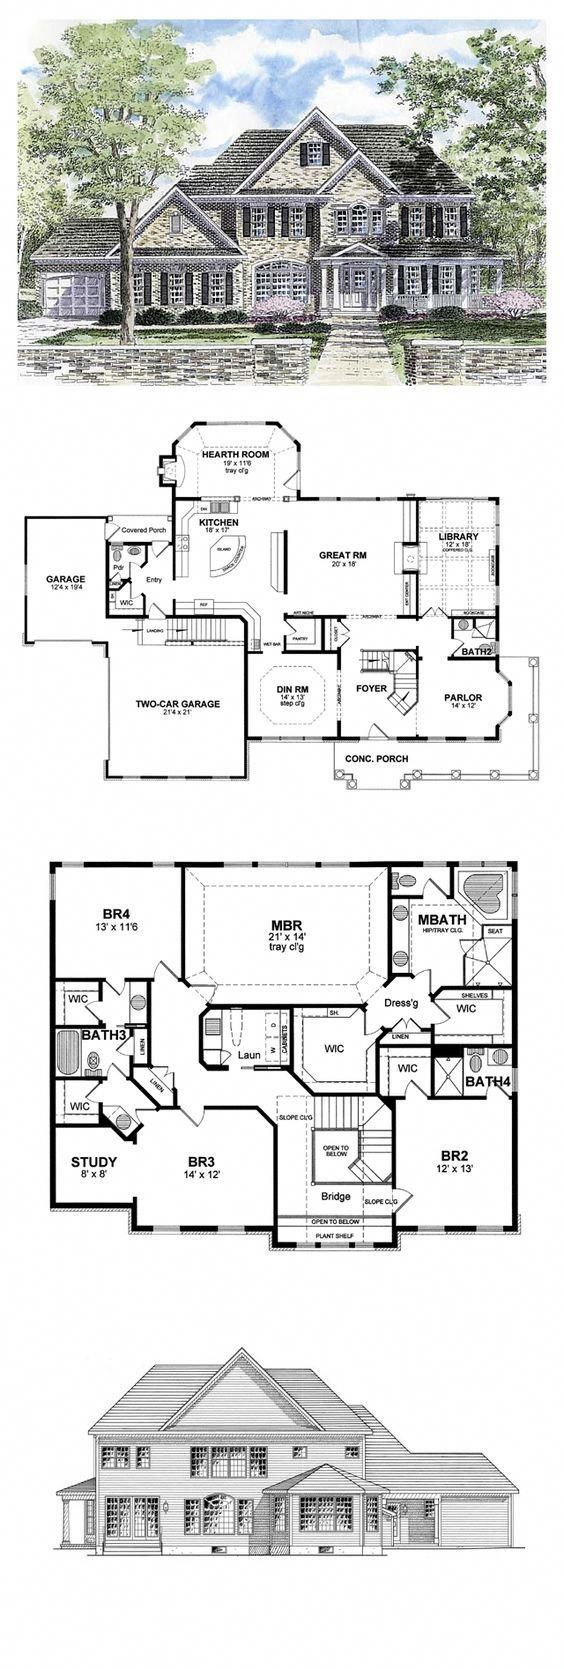 COOL House Plan ID: chp-44788 | Total Living Area: 3859 sq. ft., 4 bedrooms & 4.5 bathrooms.